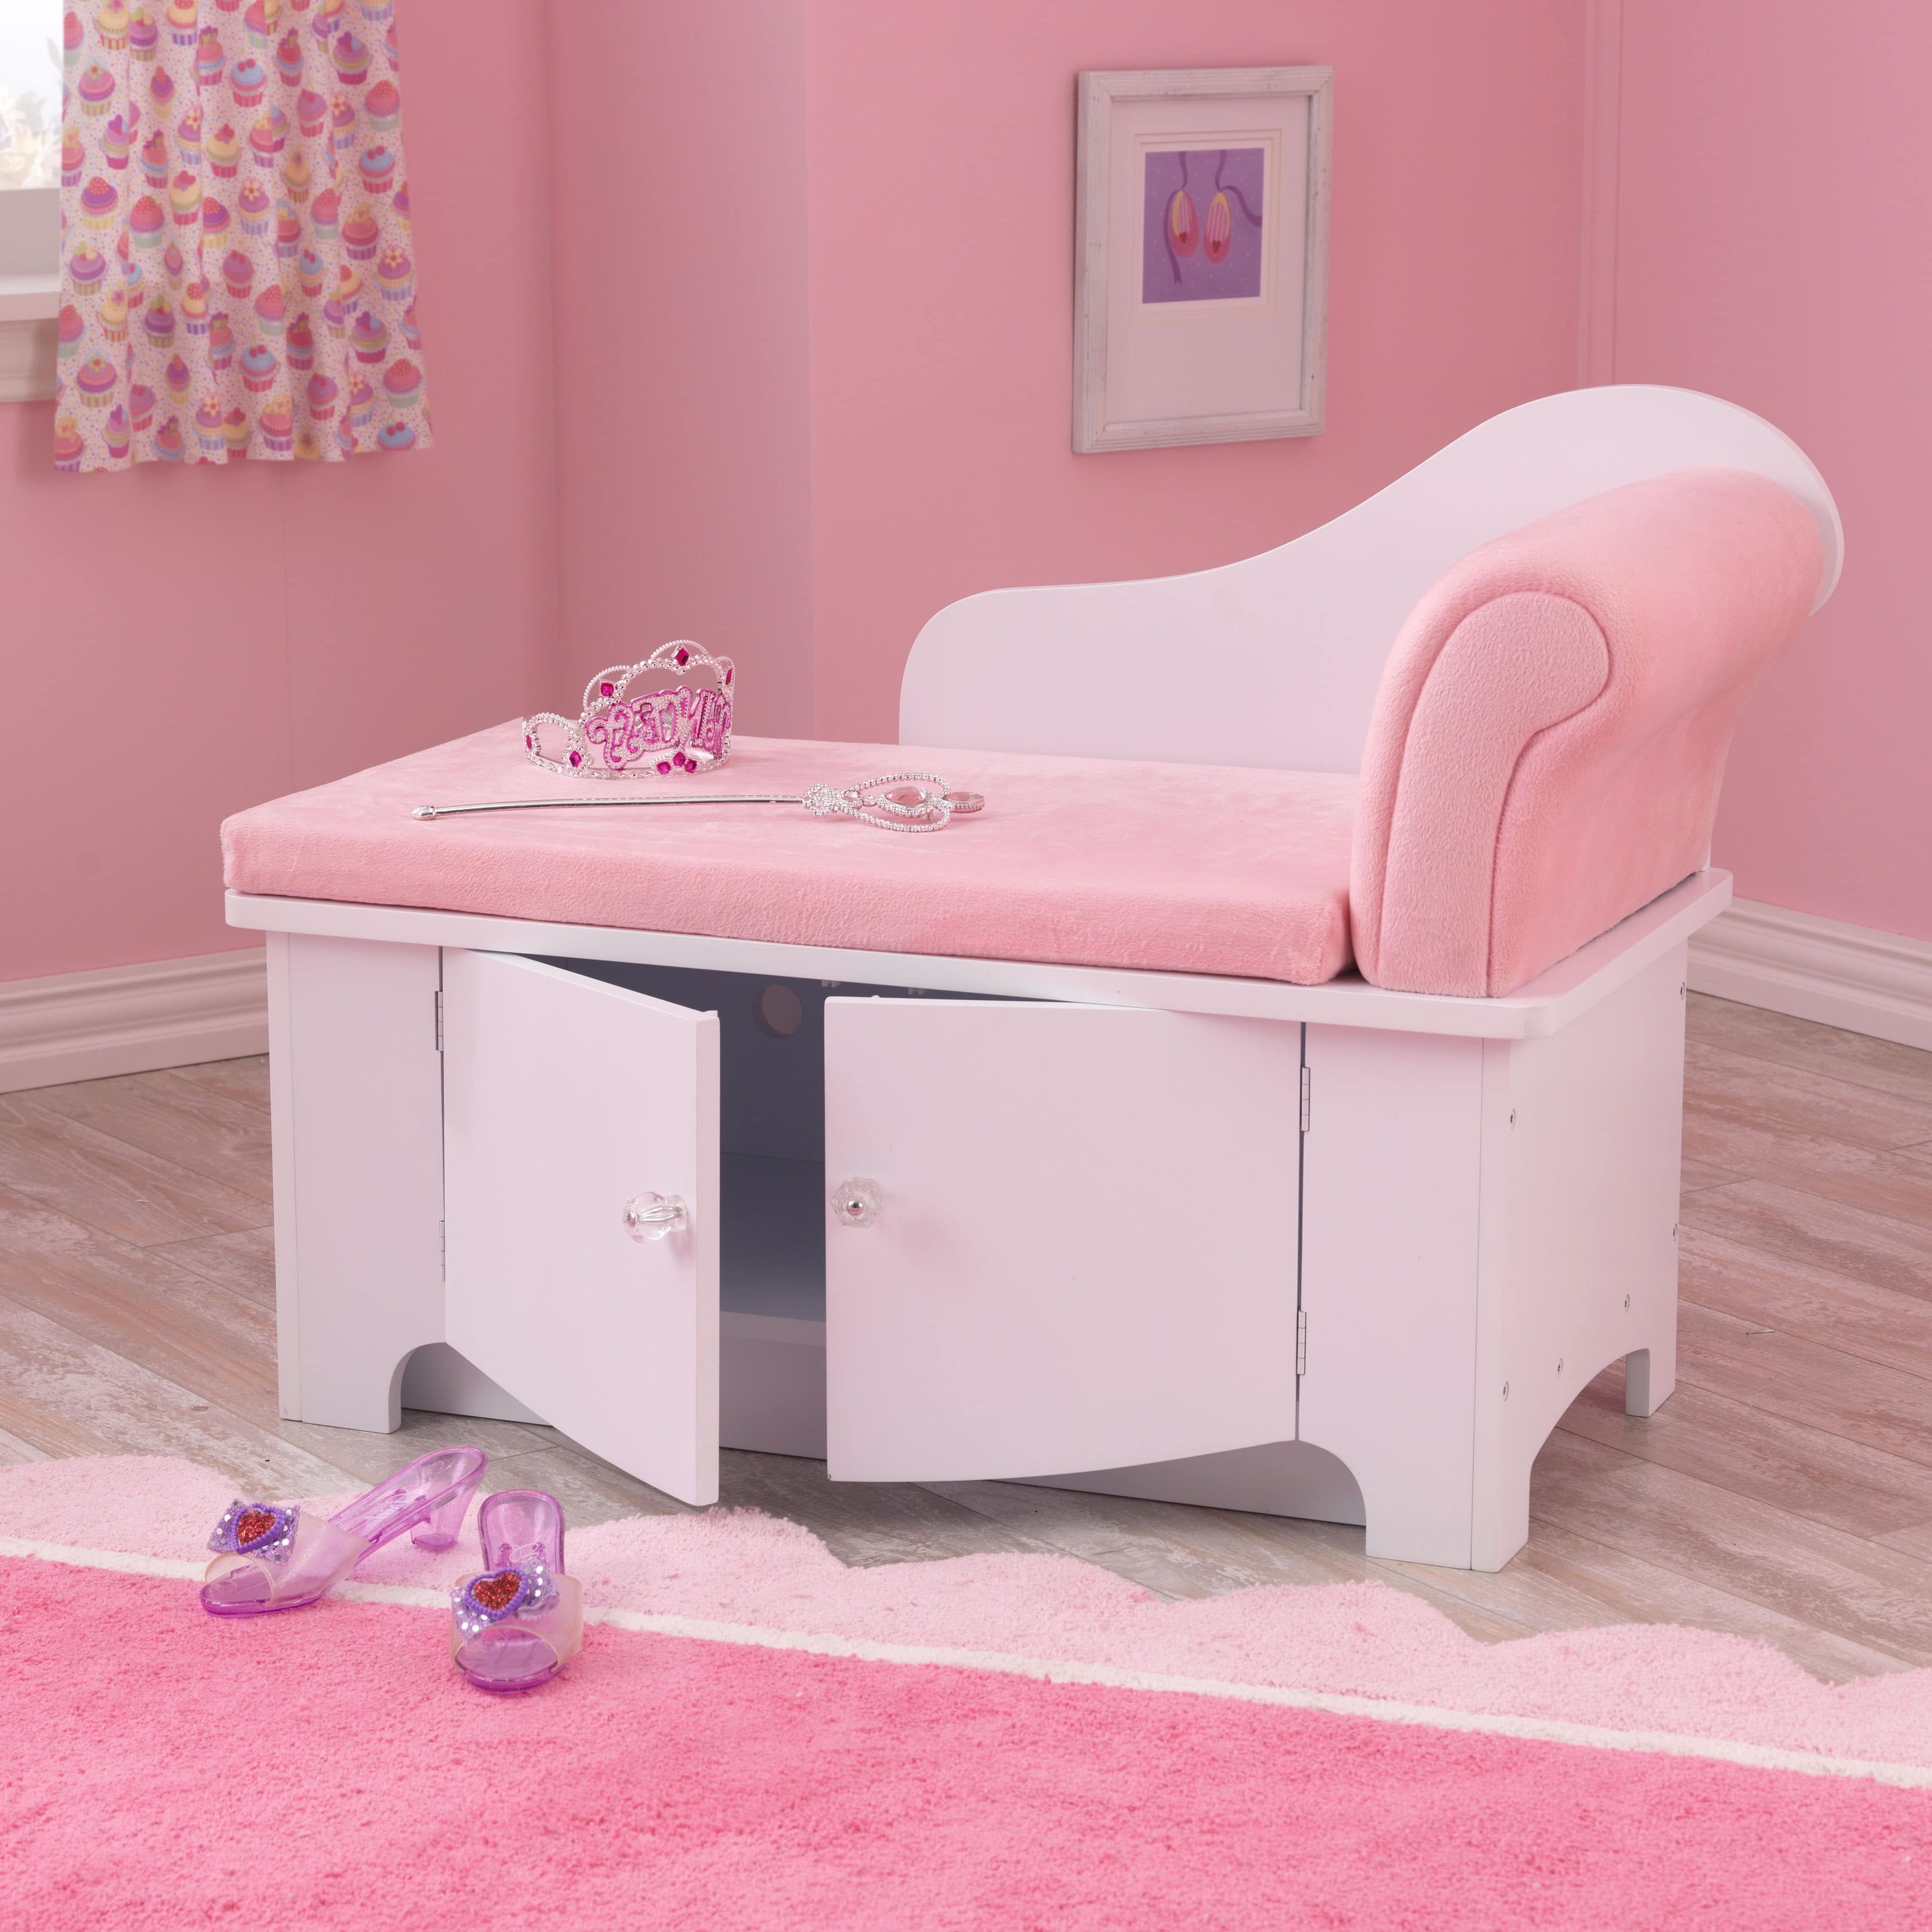 Kids Chaise Lounges Inside Well Known Kids Chaise Lounge Kidkraft Princess Pink Cushion Comfort Toy (View 5 of 15)